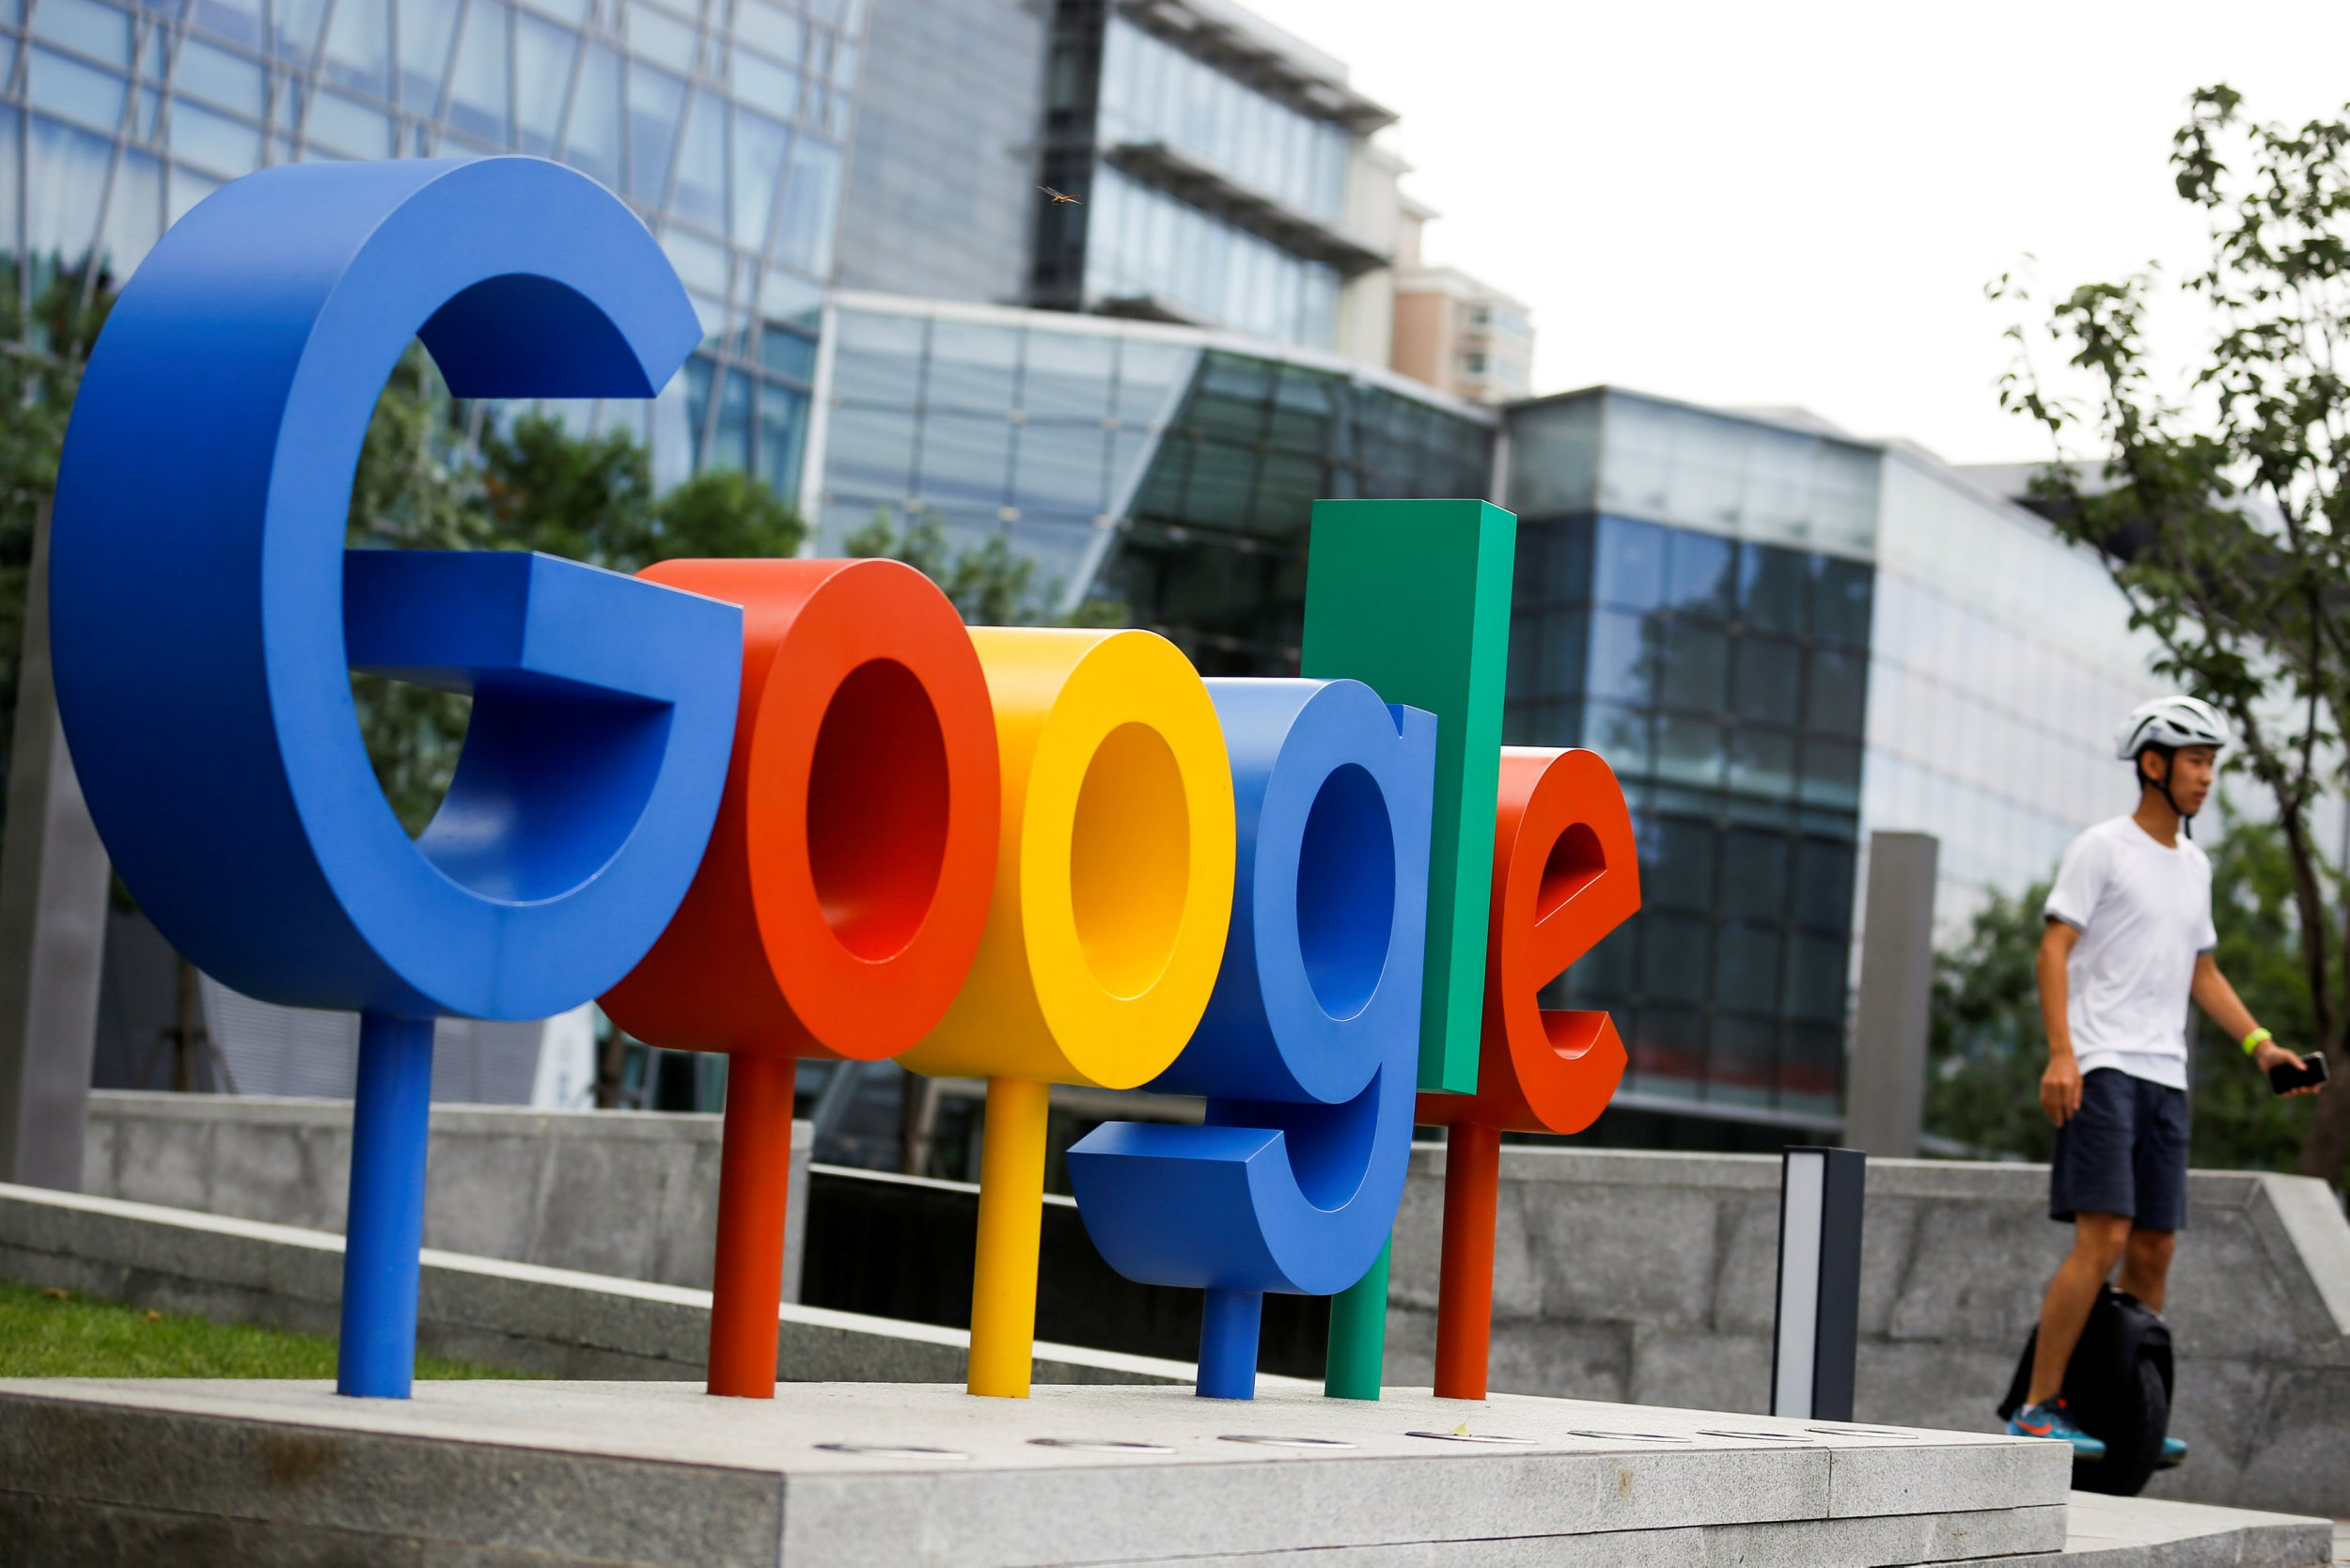 FILE PHOTO: The brand logo of Alphabet Inc's Google is seen outside its office in Beijing, China, August 8, 2018. REUTERS/Thomas Peter/File Photo